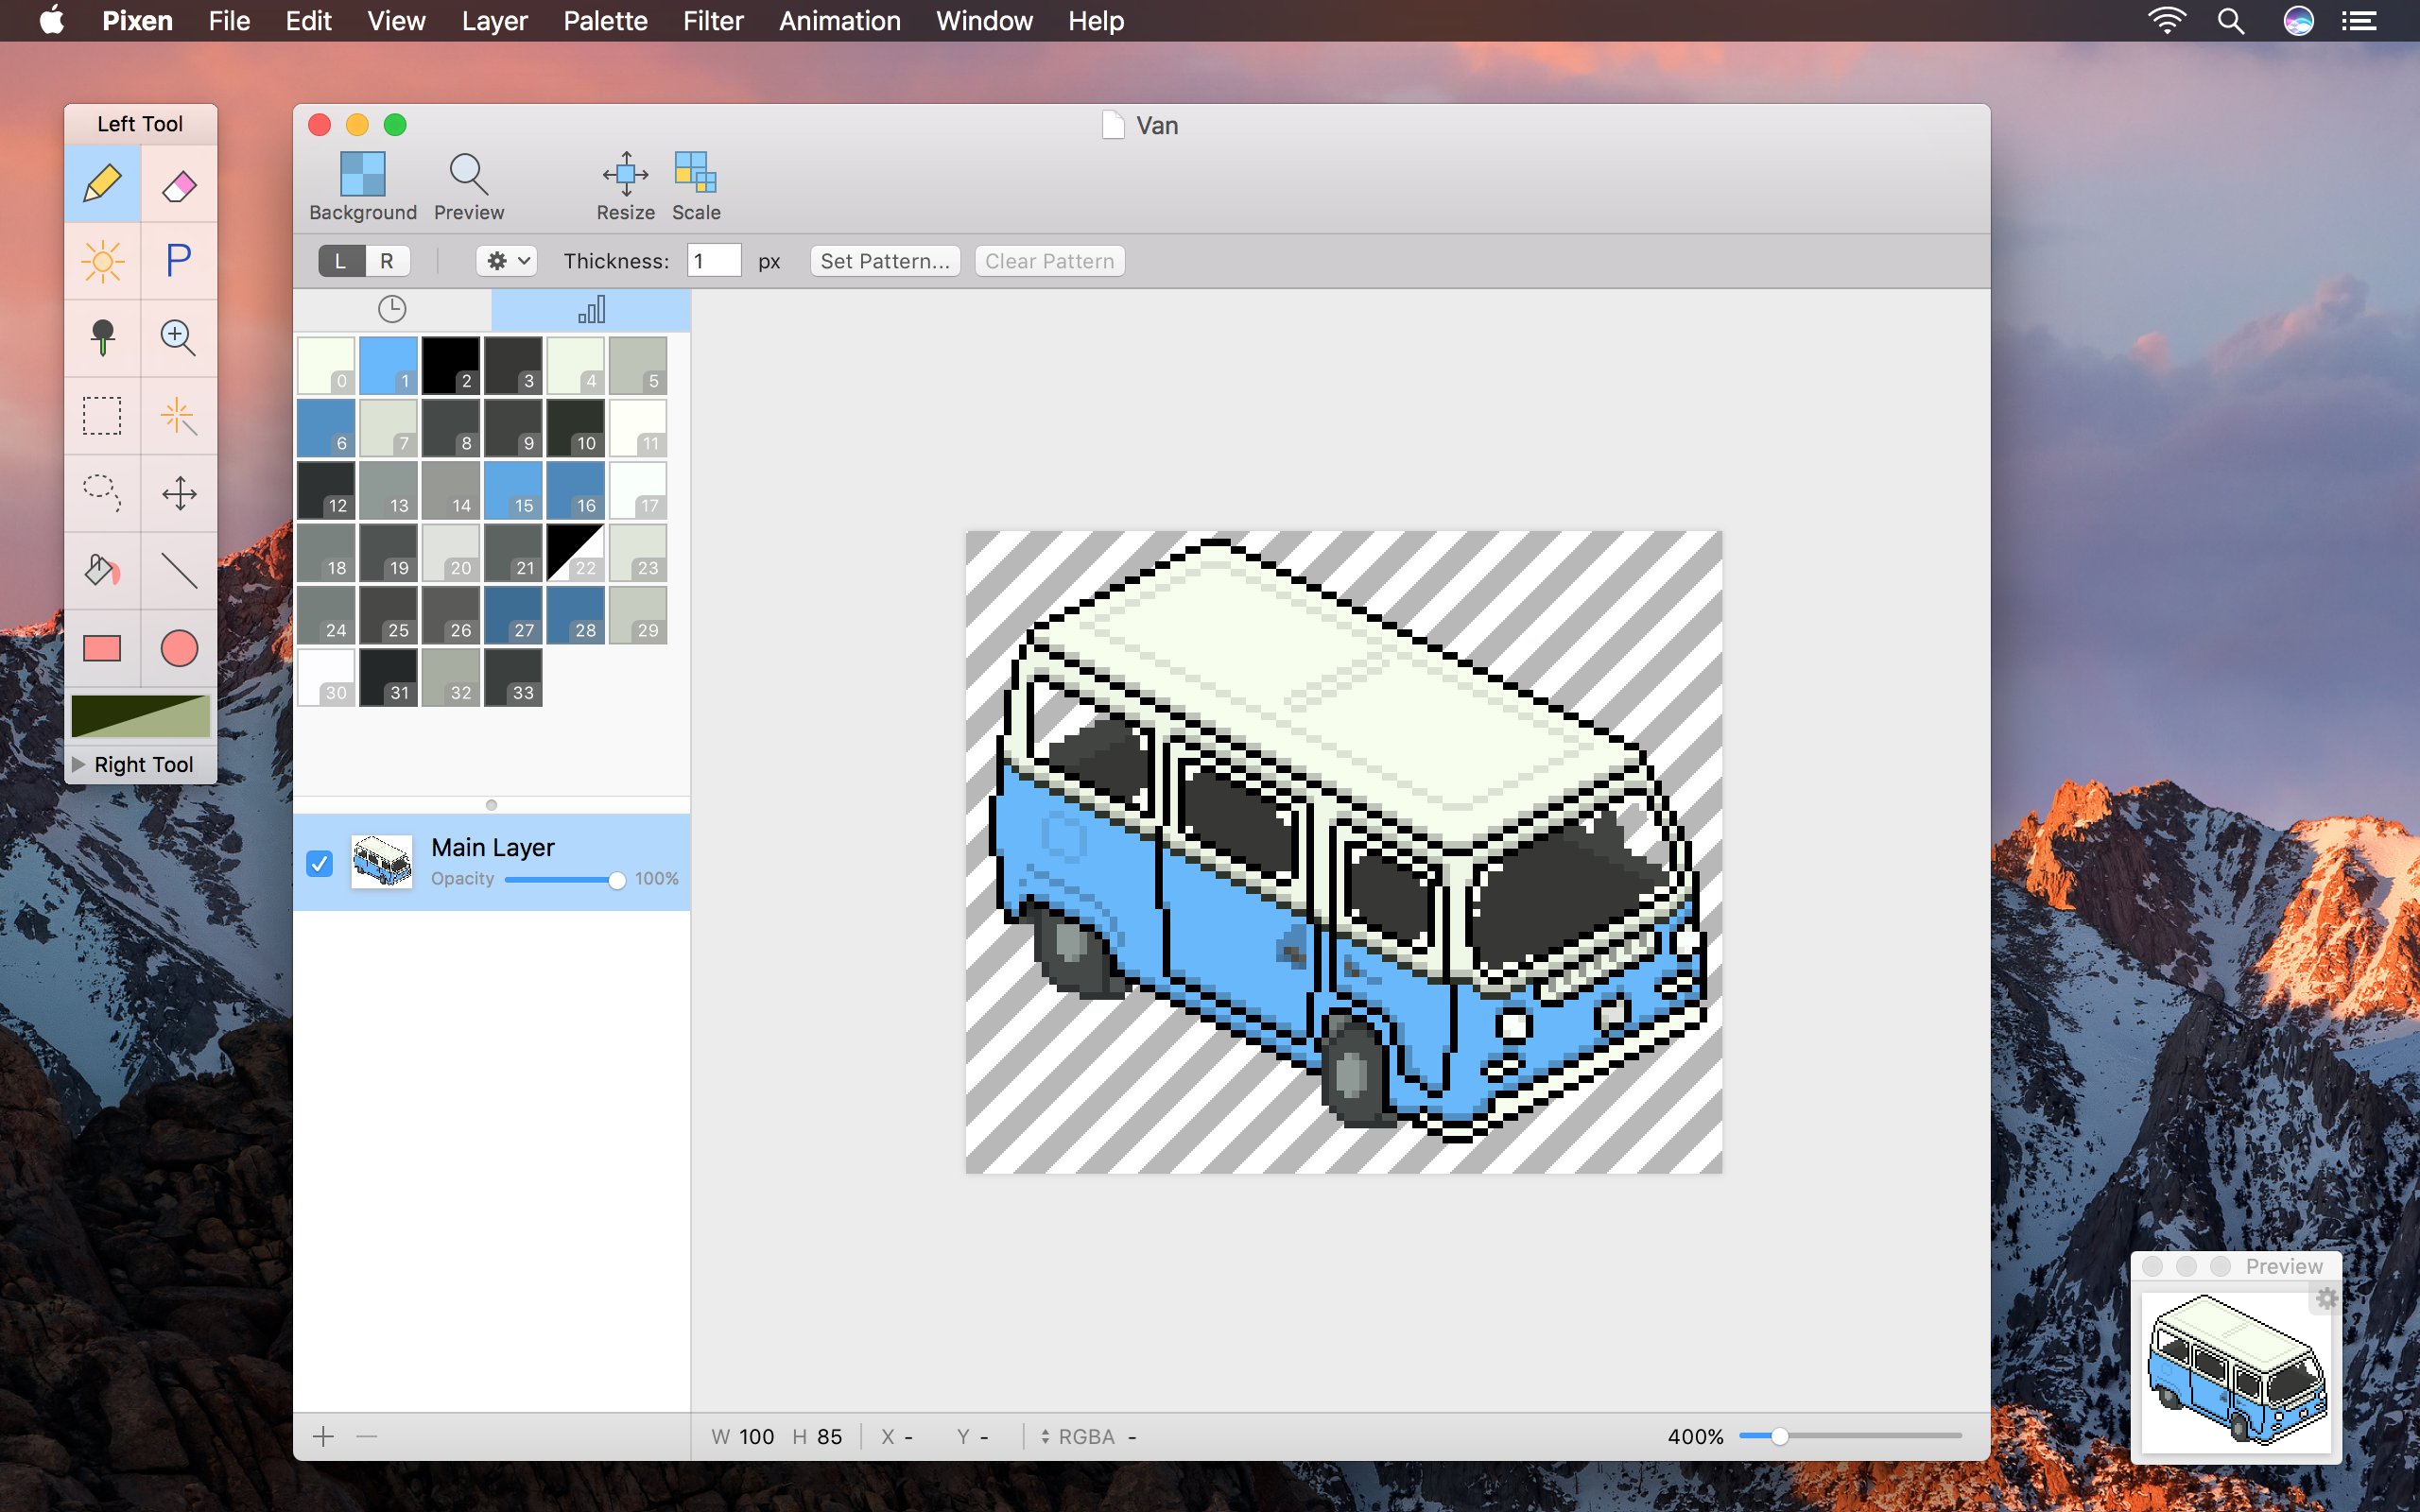 Drawn pixel art iphone And editor Animations Pixen a